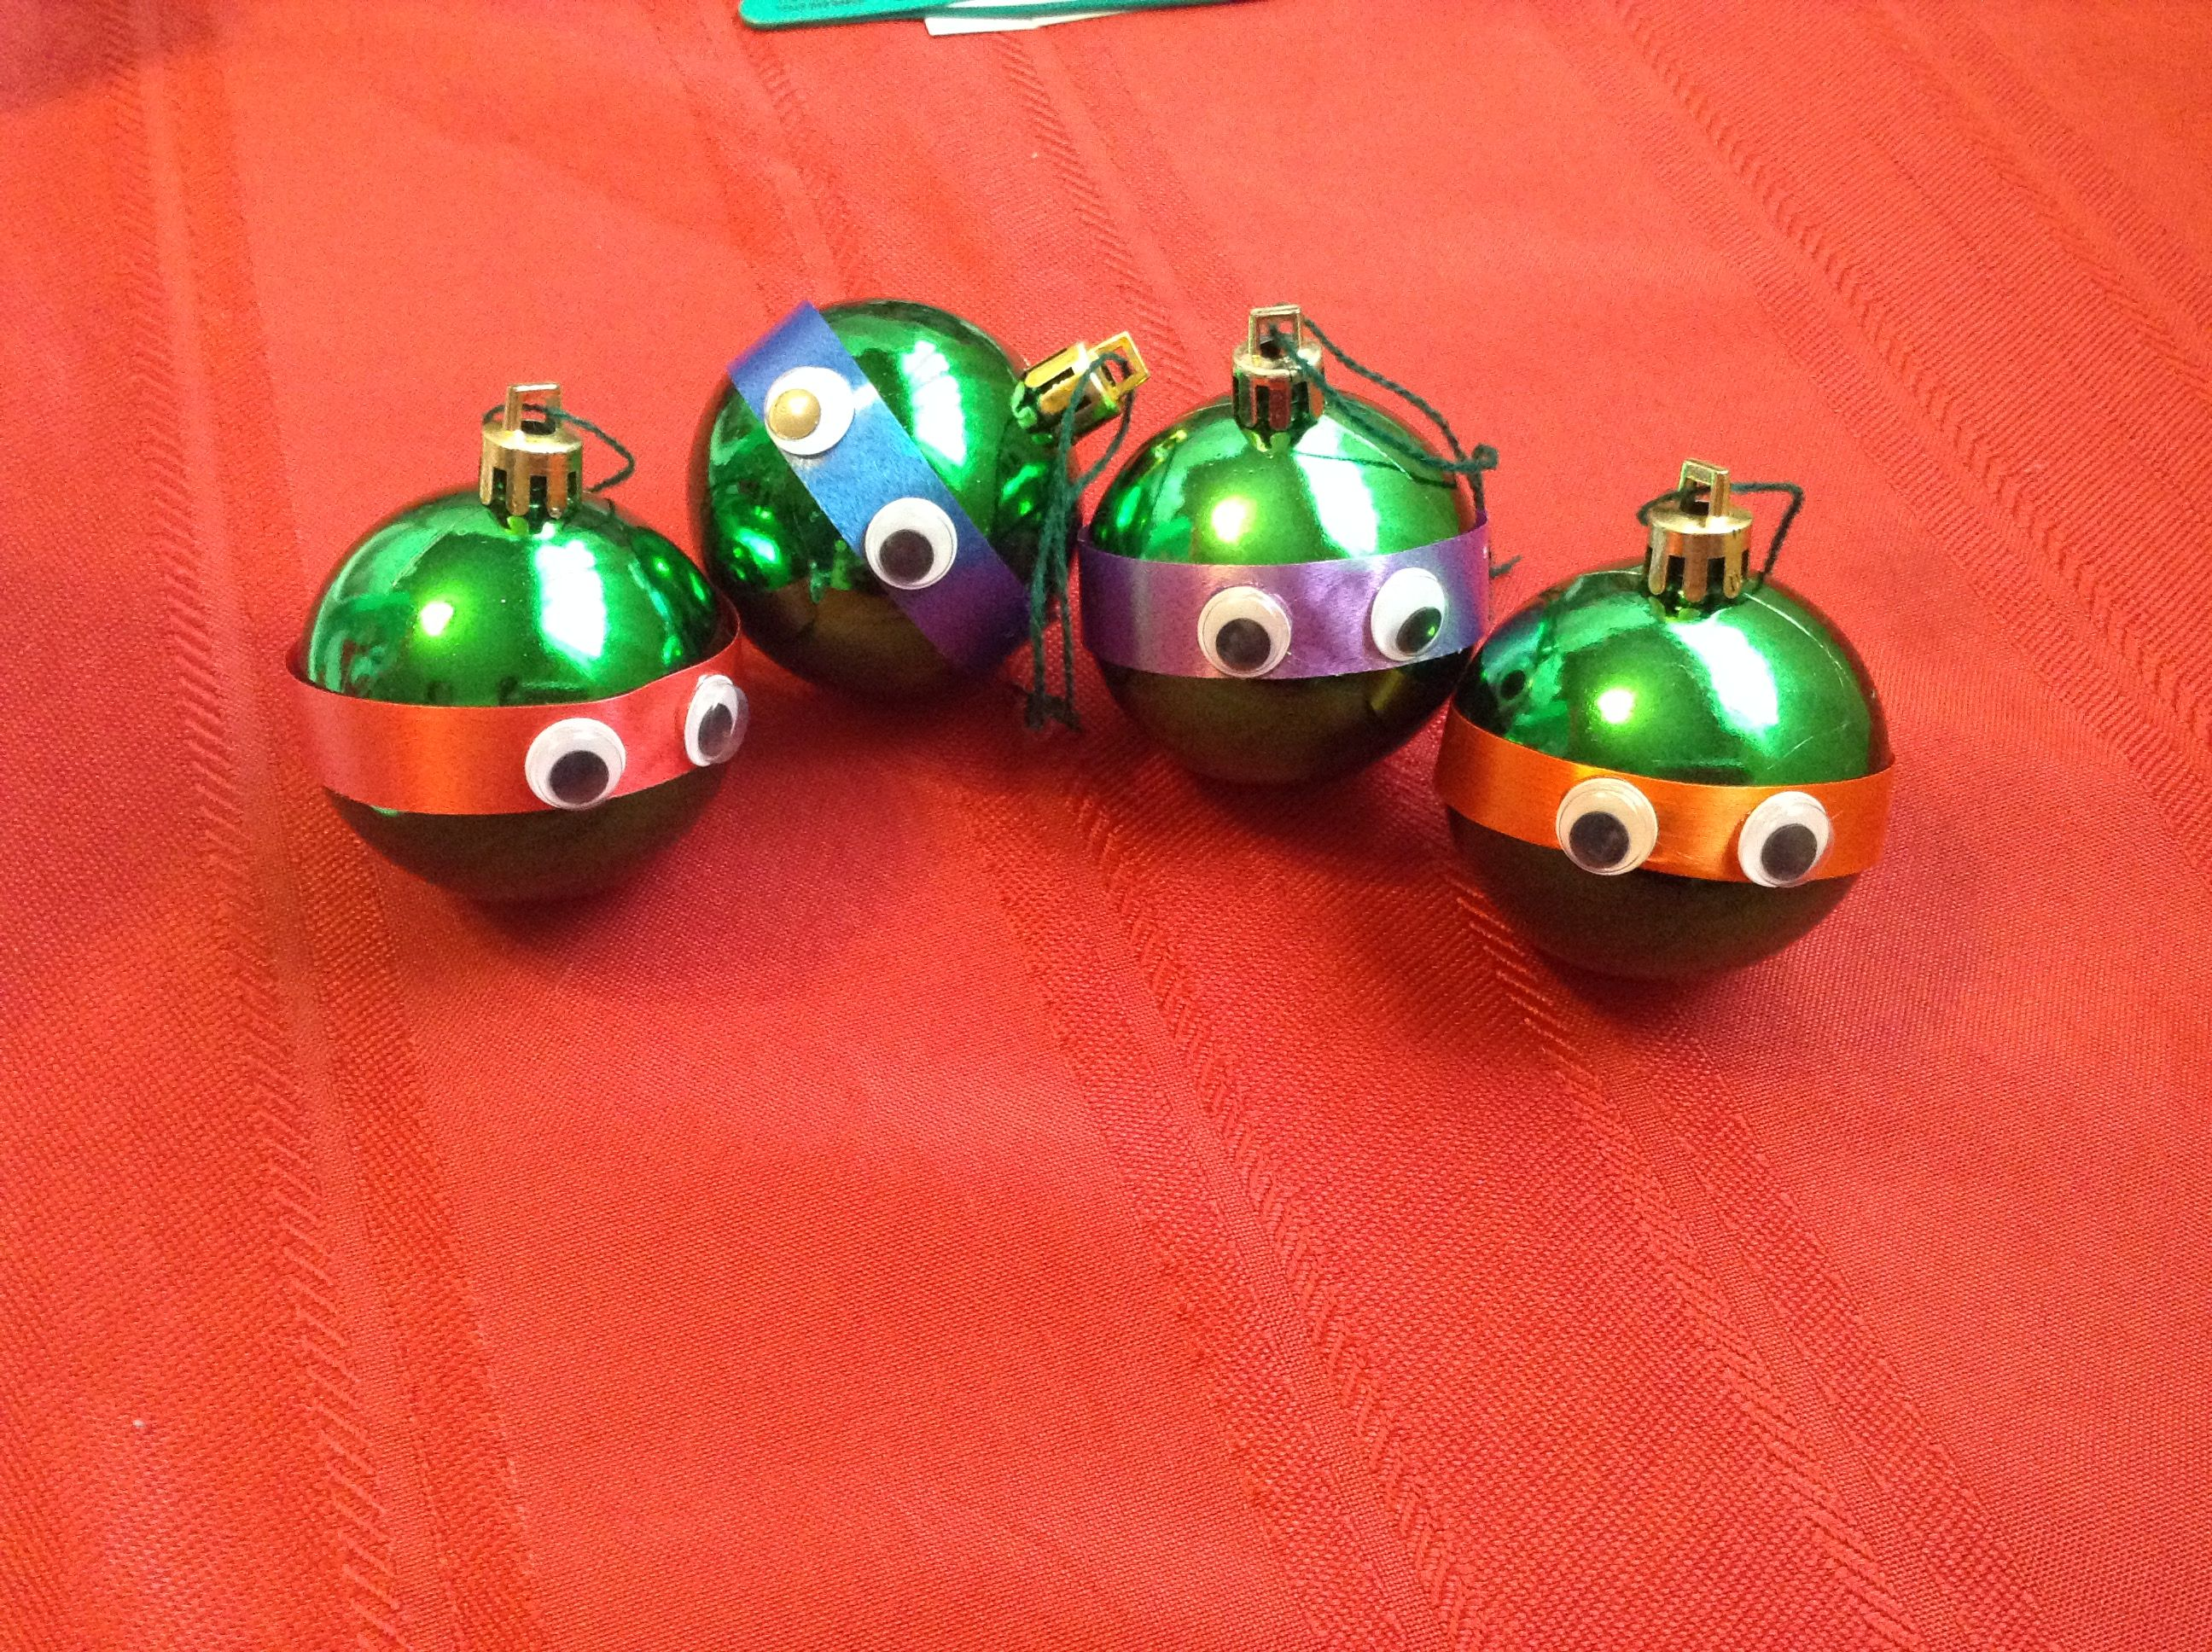 Ninja turtle ornaments. Easy project. Got ornaments that were ...